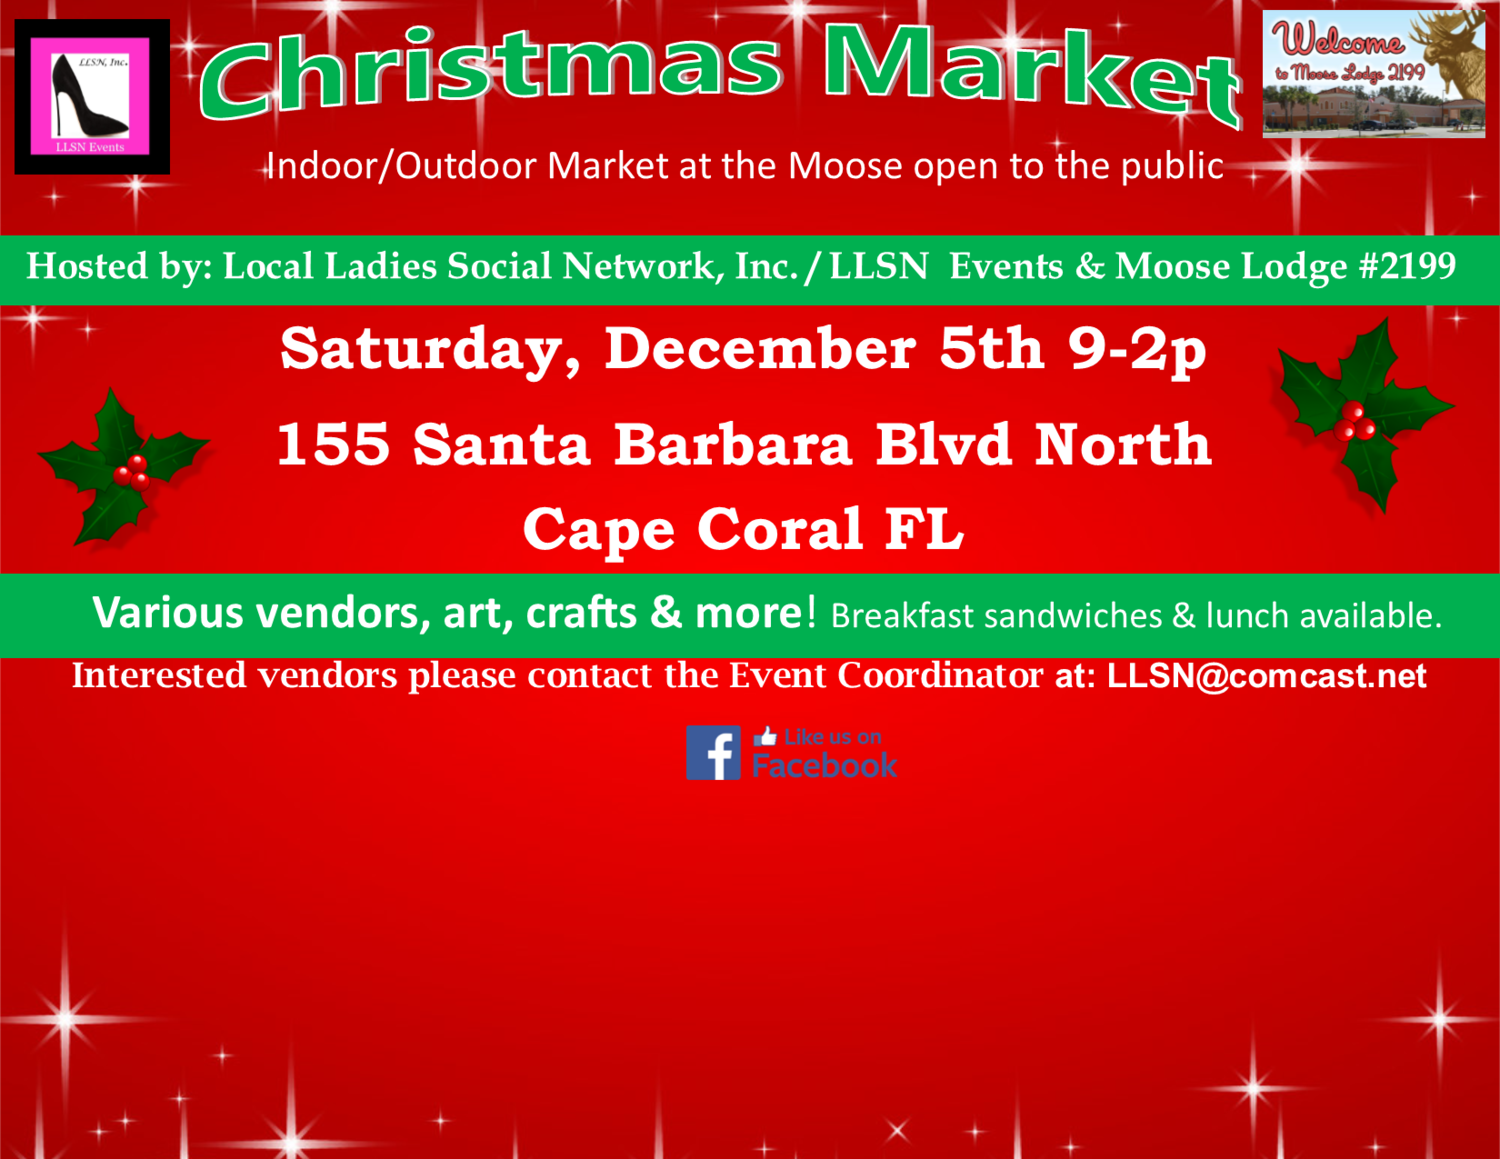 Christmas Market at the Moose- December 5th 2020 INSIDE SPOT- Includes table & chairs